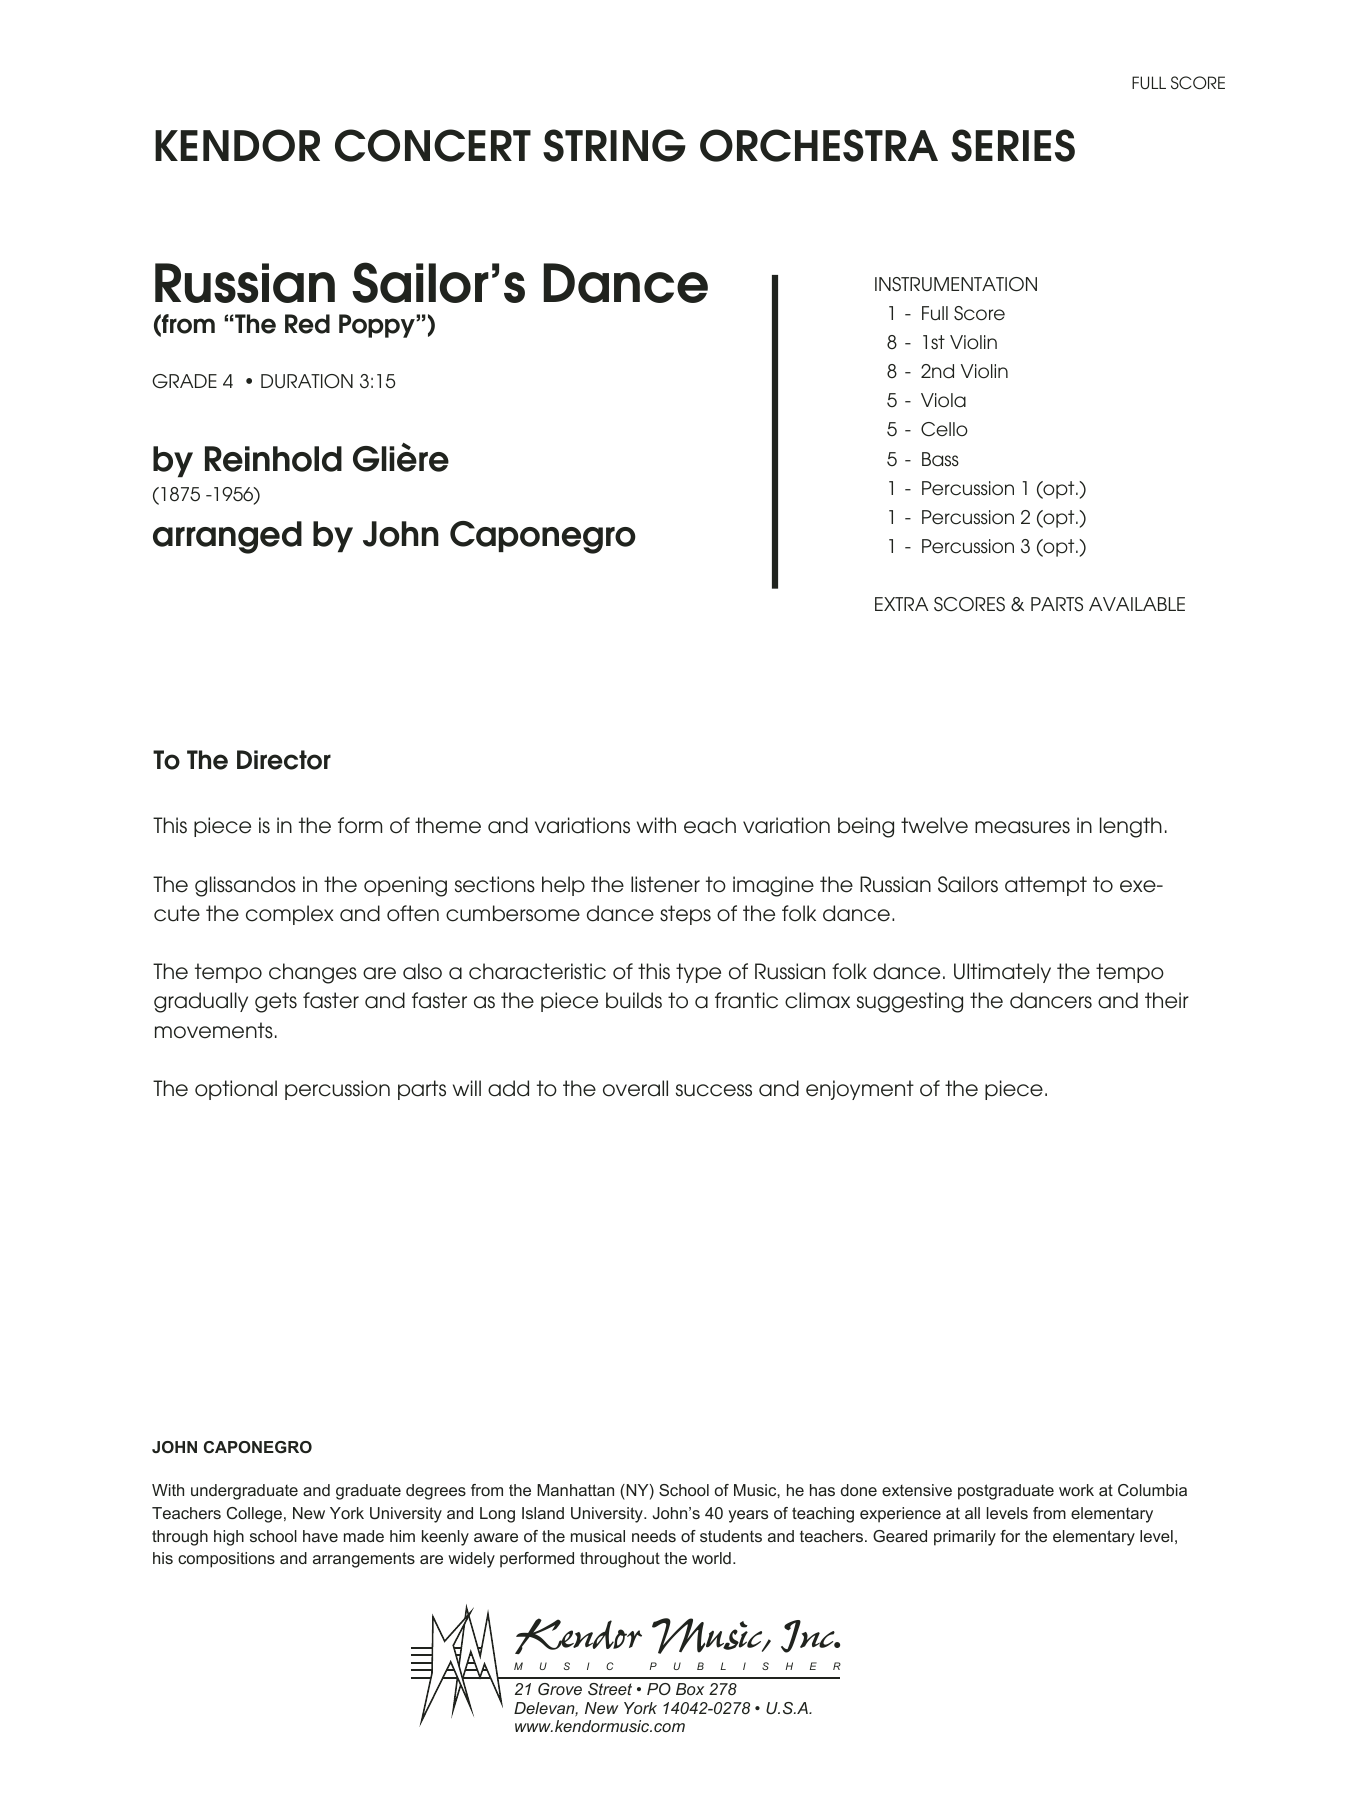 Russian Sailor's Dance (from The Red Poppy) - Full Score